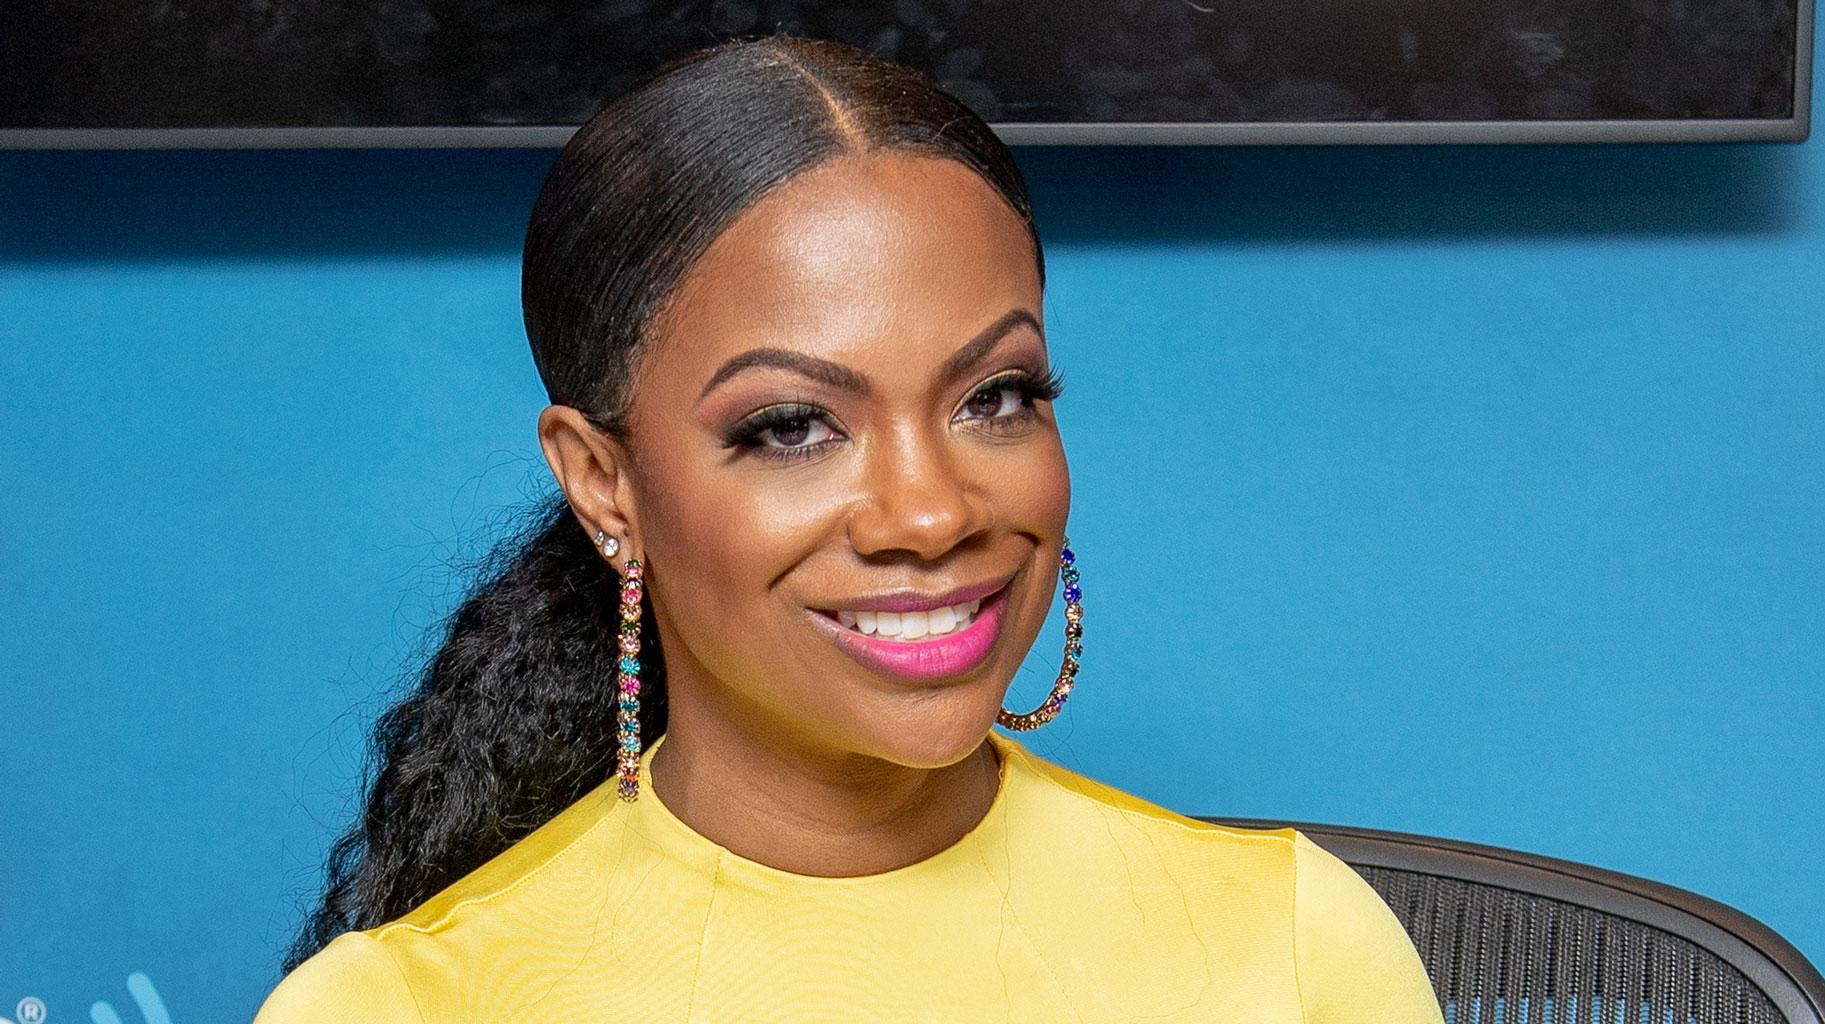 Kandi Burruss Warns Fans About Someone Impersonating Her Online